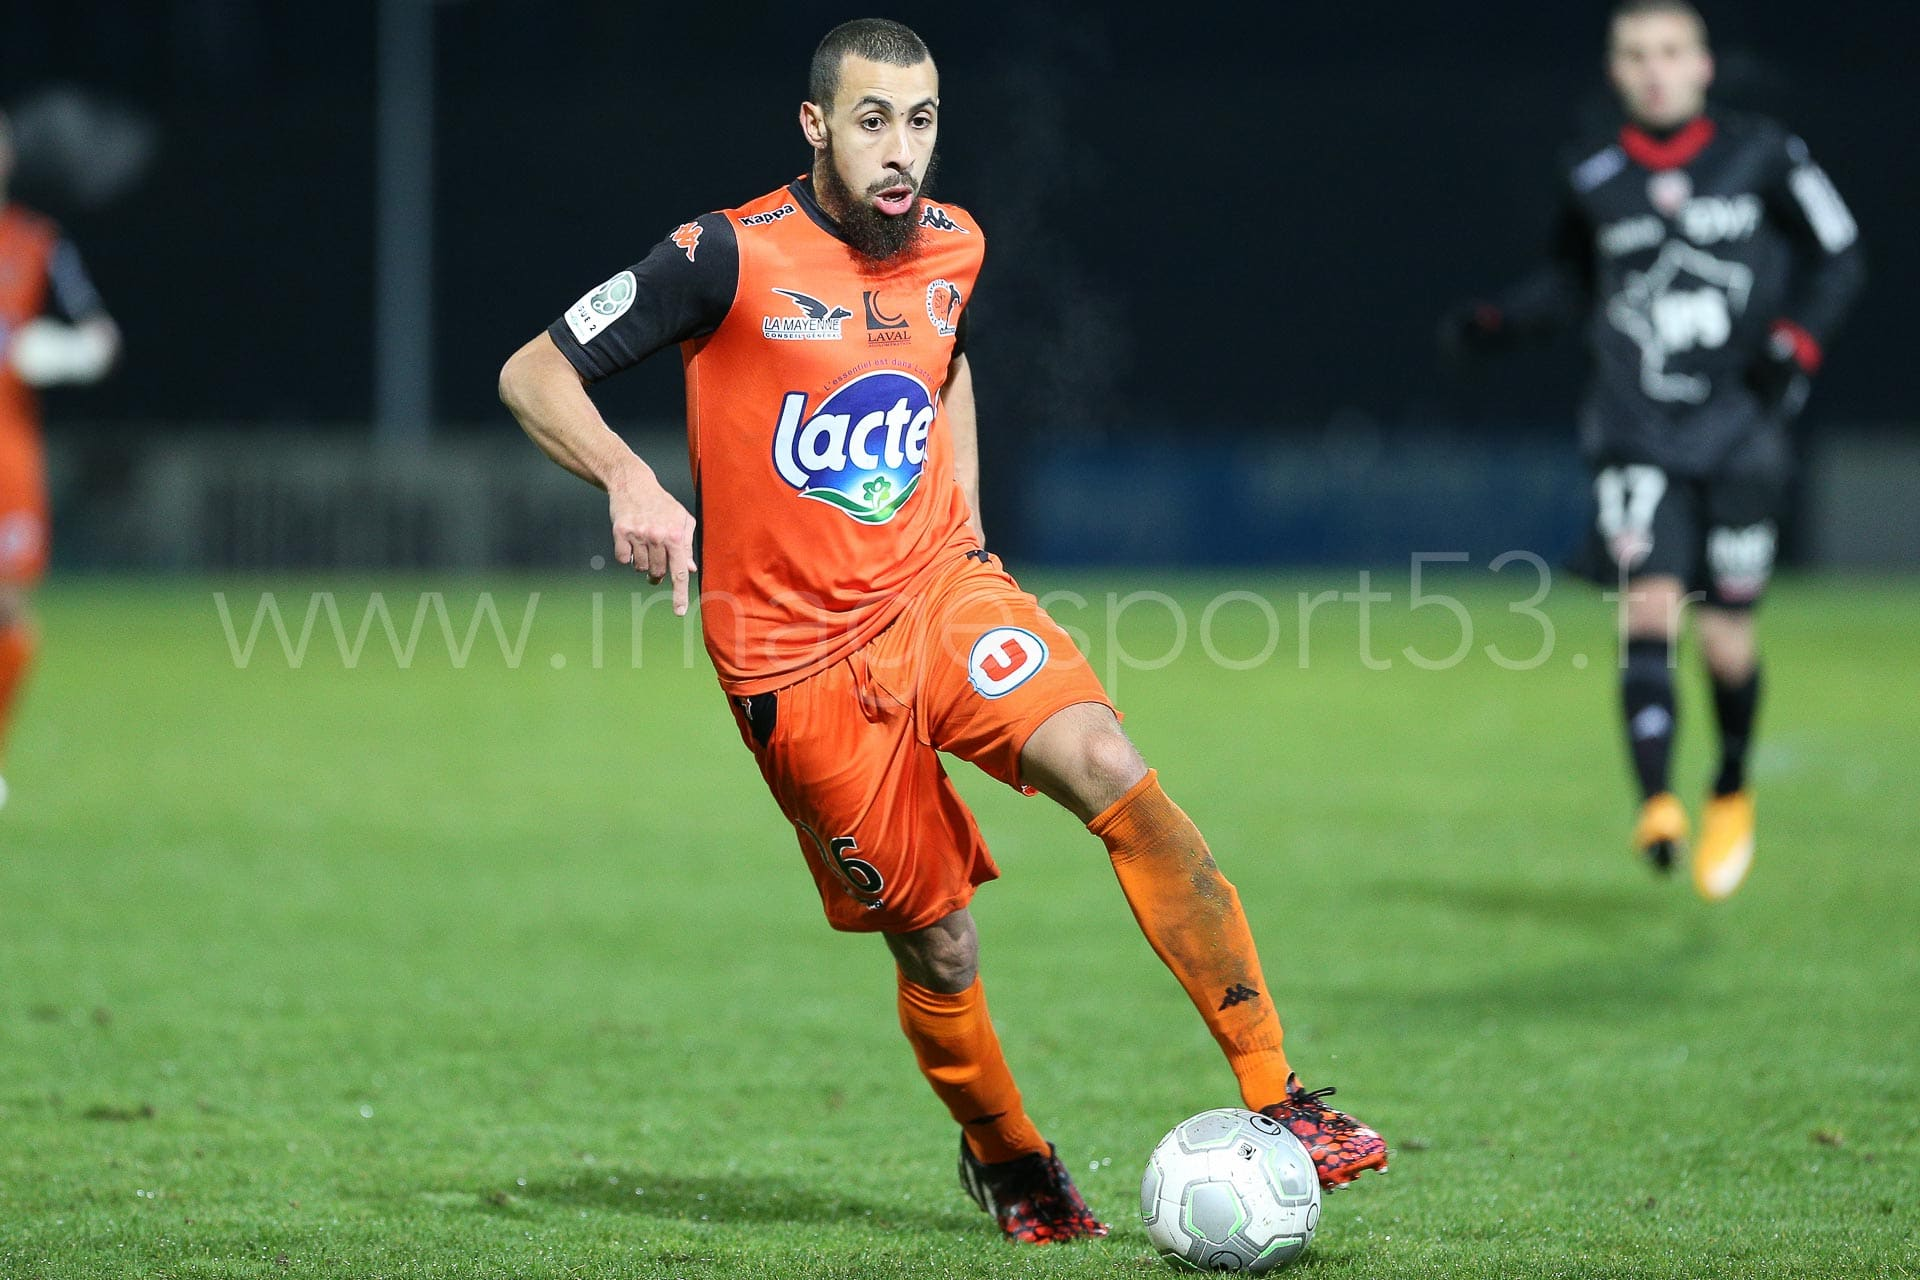 NG-Ligue2-1415-J22-Laval-Troyes_23